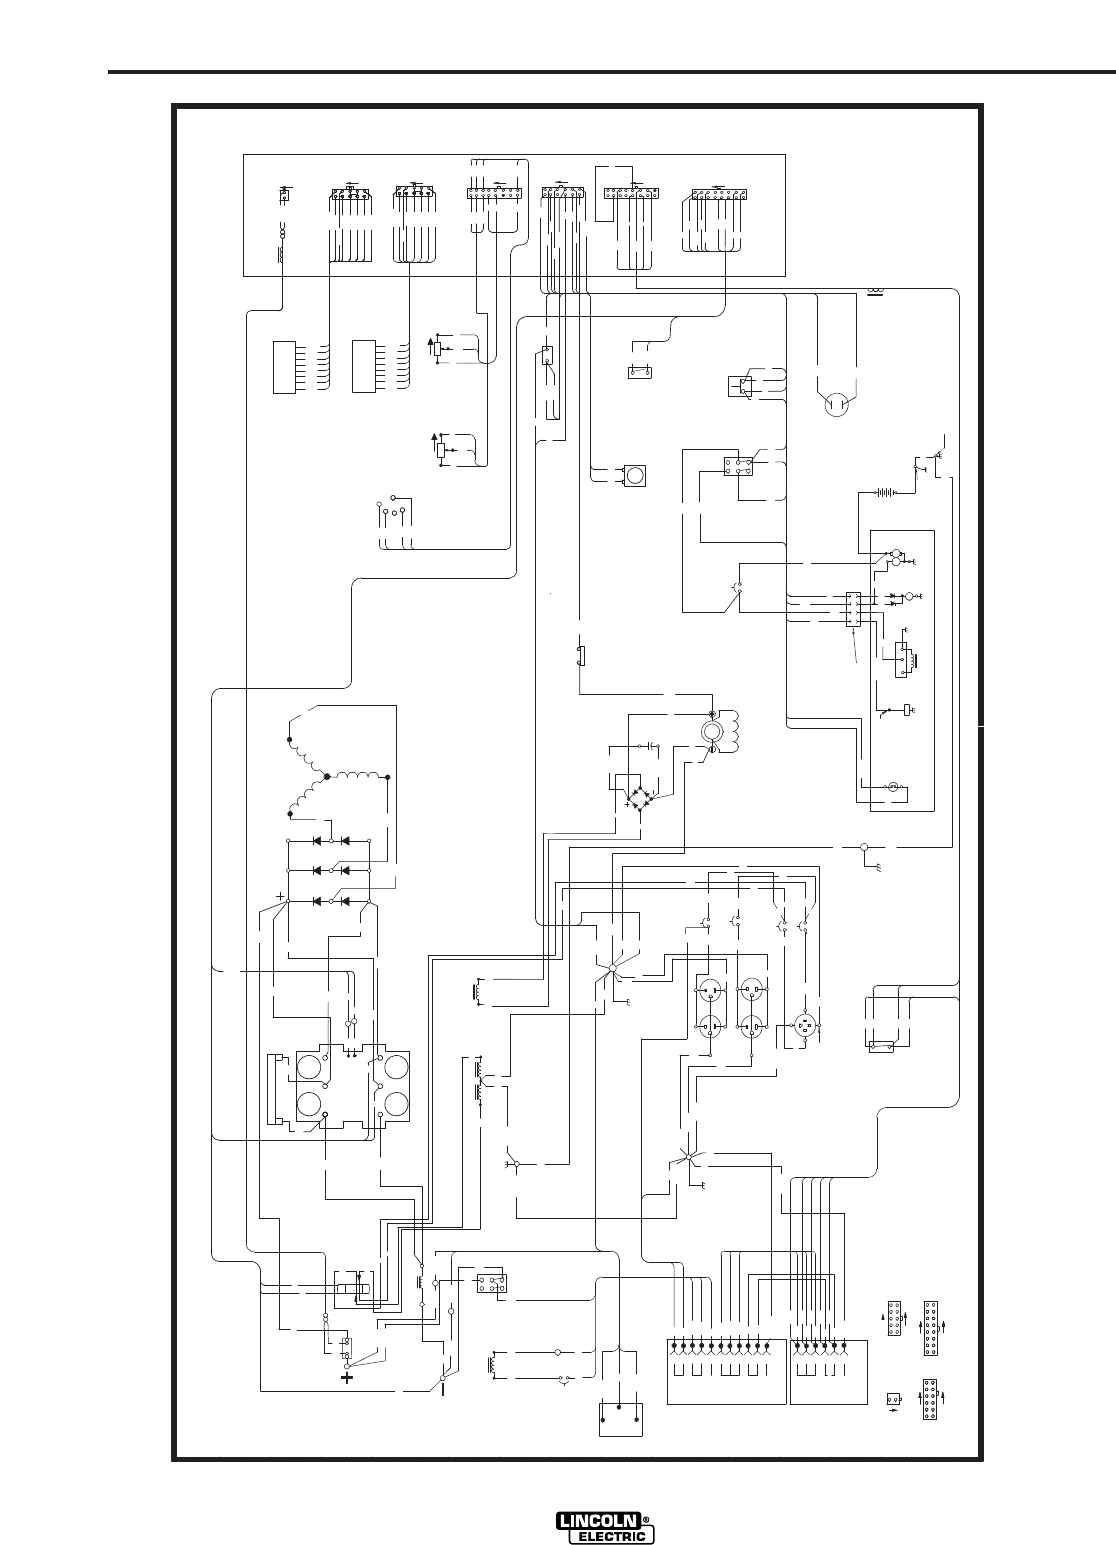 Page 46 of Lincoln Electric Welding System IM742-A User Guide ... Lincoln Arc Welder Wiring Diagram on lincoln 100 mig welder manual, lincoln electric arc welder, lincoln sa-200 parts diagram, welder equipment diagram, lincoln 225 gas welder, welder circuit diagram, lincoln 110 mig welder, lincoln 225 arc welder manual, lincoln 225 welder parts, lincoln 225 stick welder ac dc, lincoln welder engine diagram, lincoln 220 stick welder, lincoln welder schematic, lincoln electric ac 225 s, lincoln 225 arc welder wheels, lincoln tombstone welder, lincoln arc welder ac dc, mig welder diagram, lincoln 225 s wiring diagram, welding diagram,